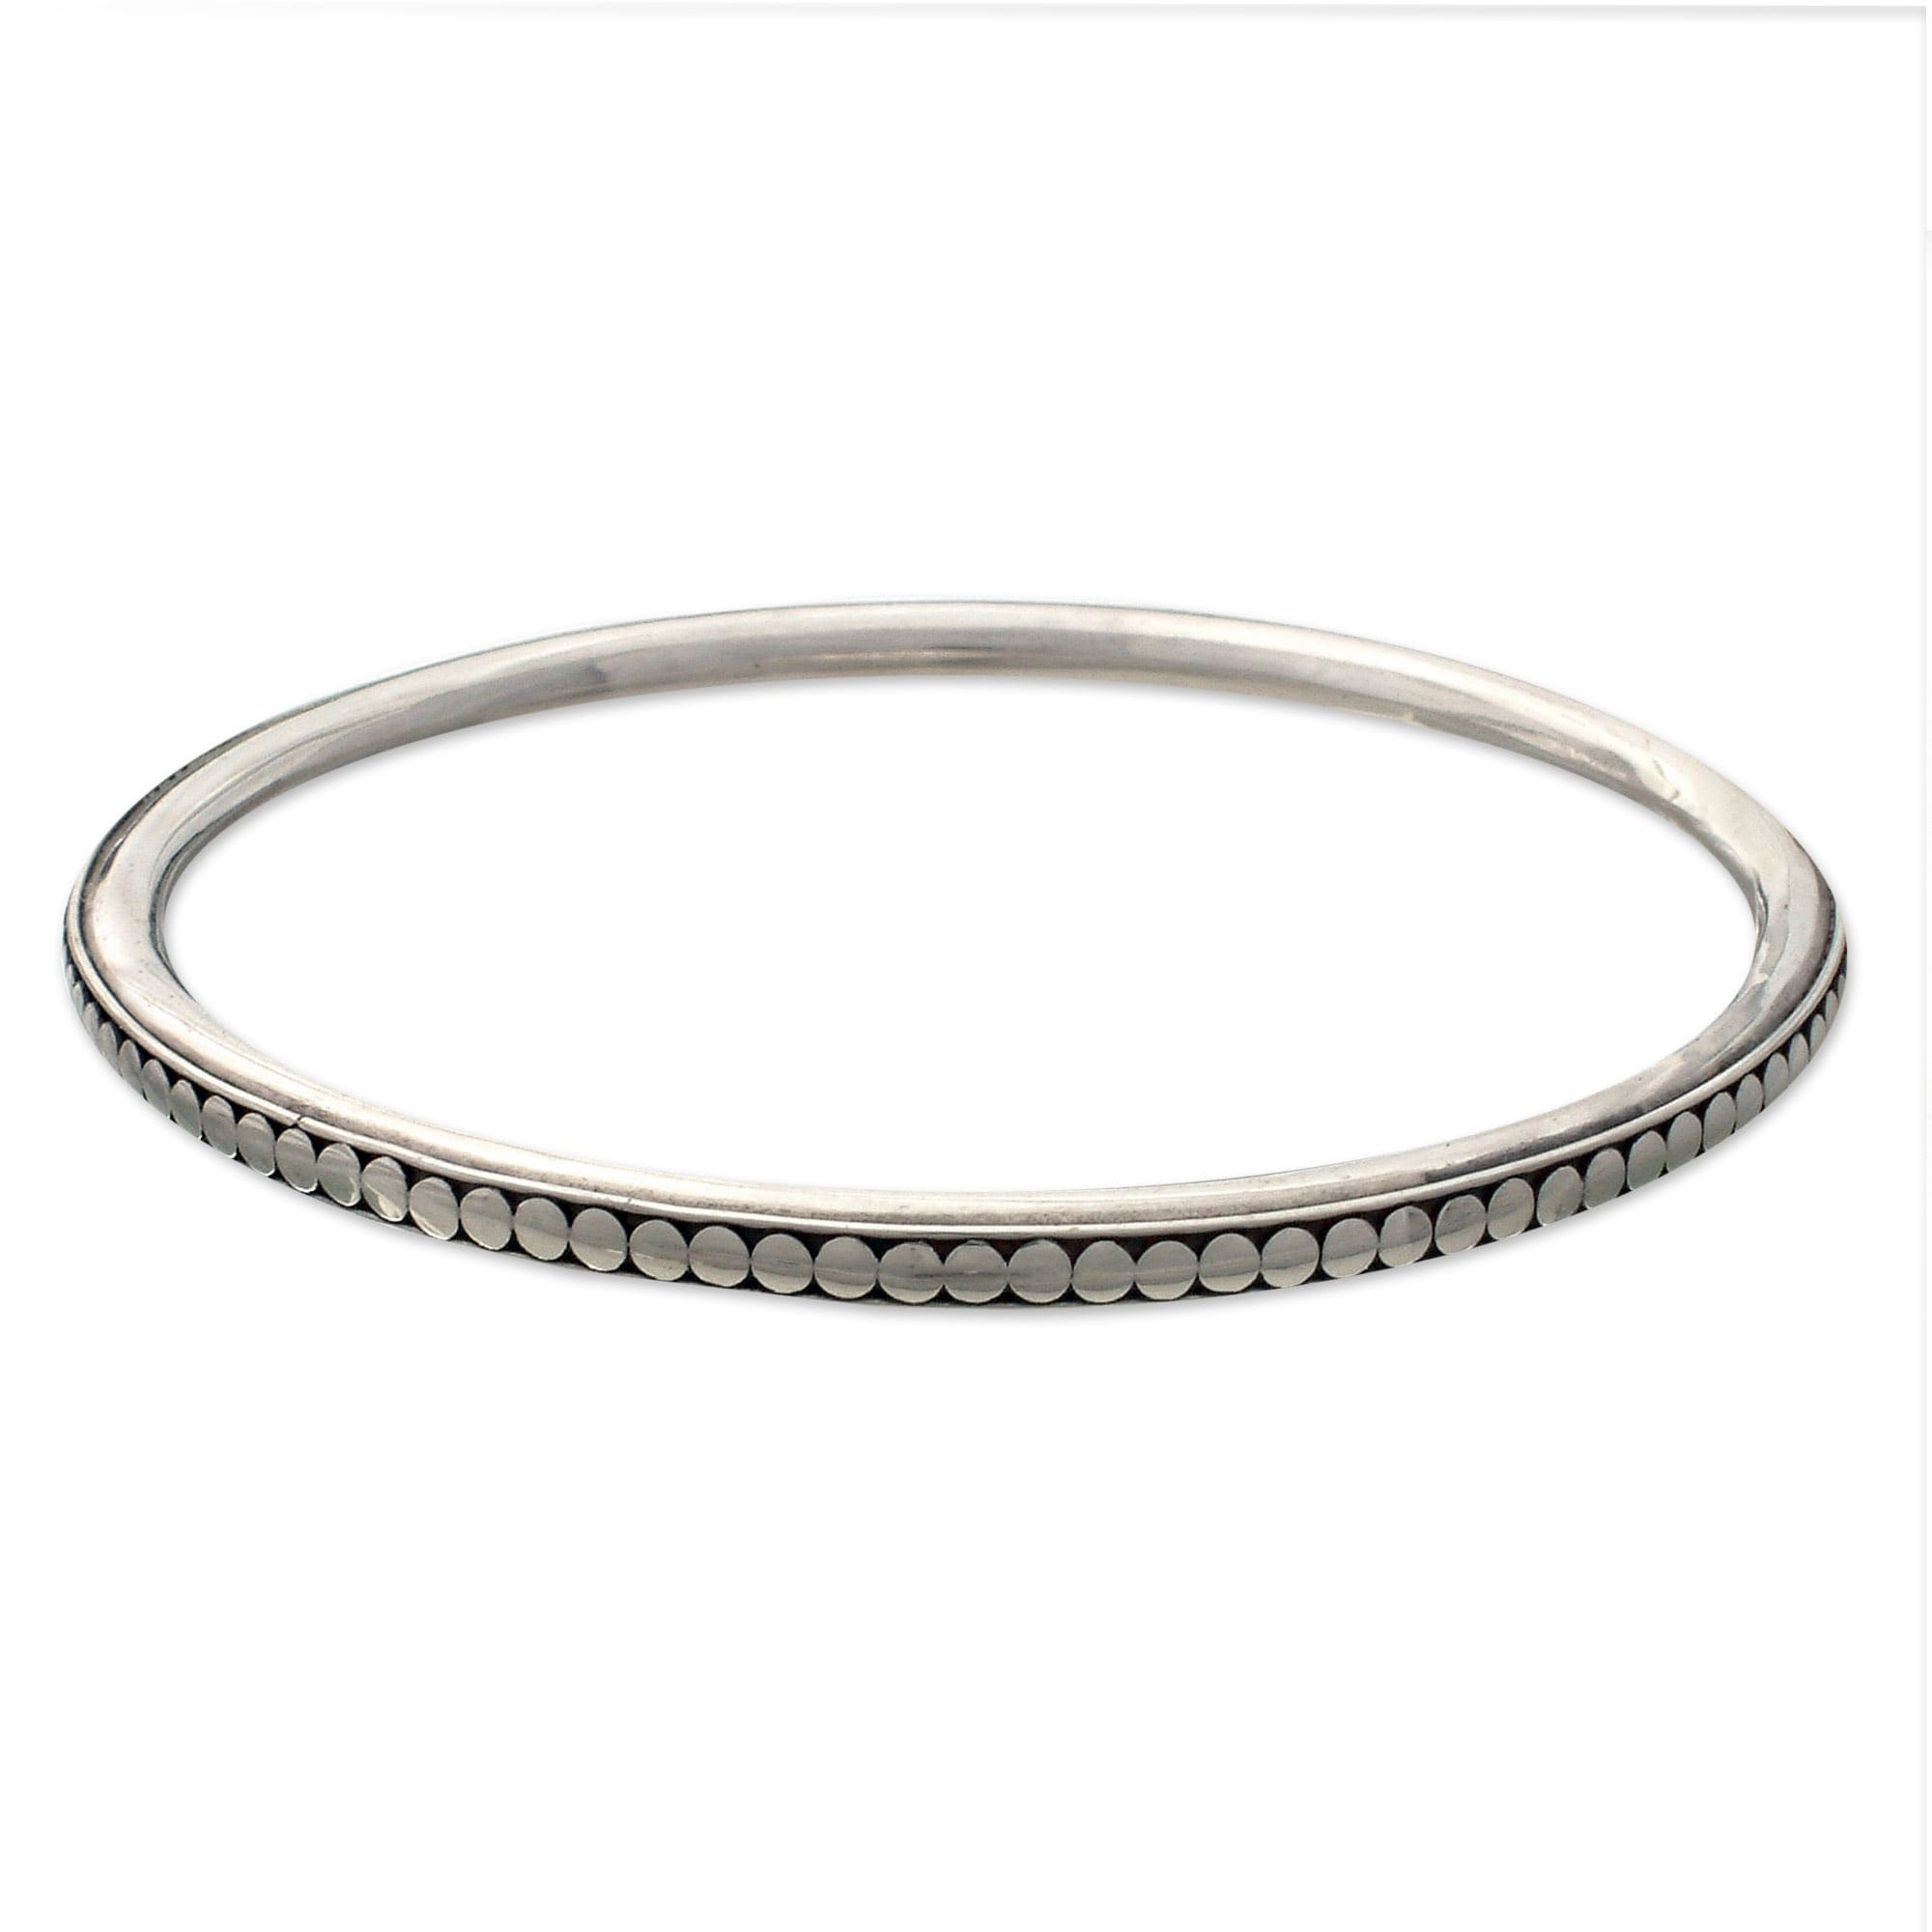 sterling solid bracelets bangle weight length polished quick plain cuff view bangles silver mm grams p bracelet width